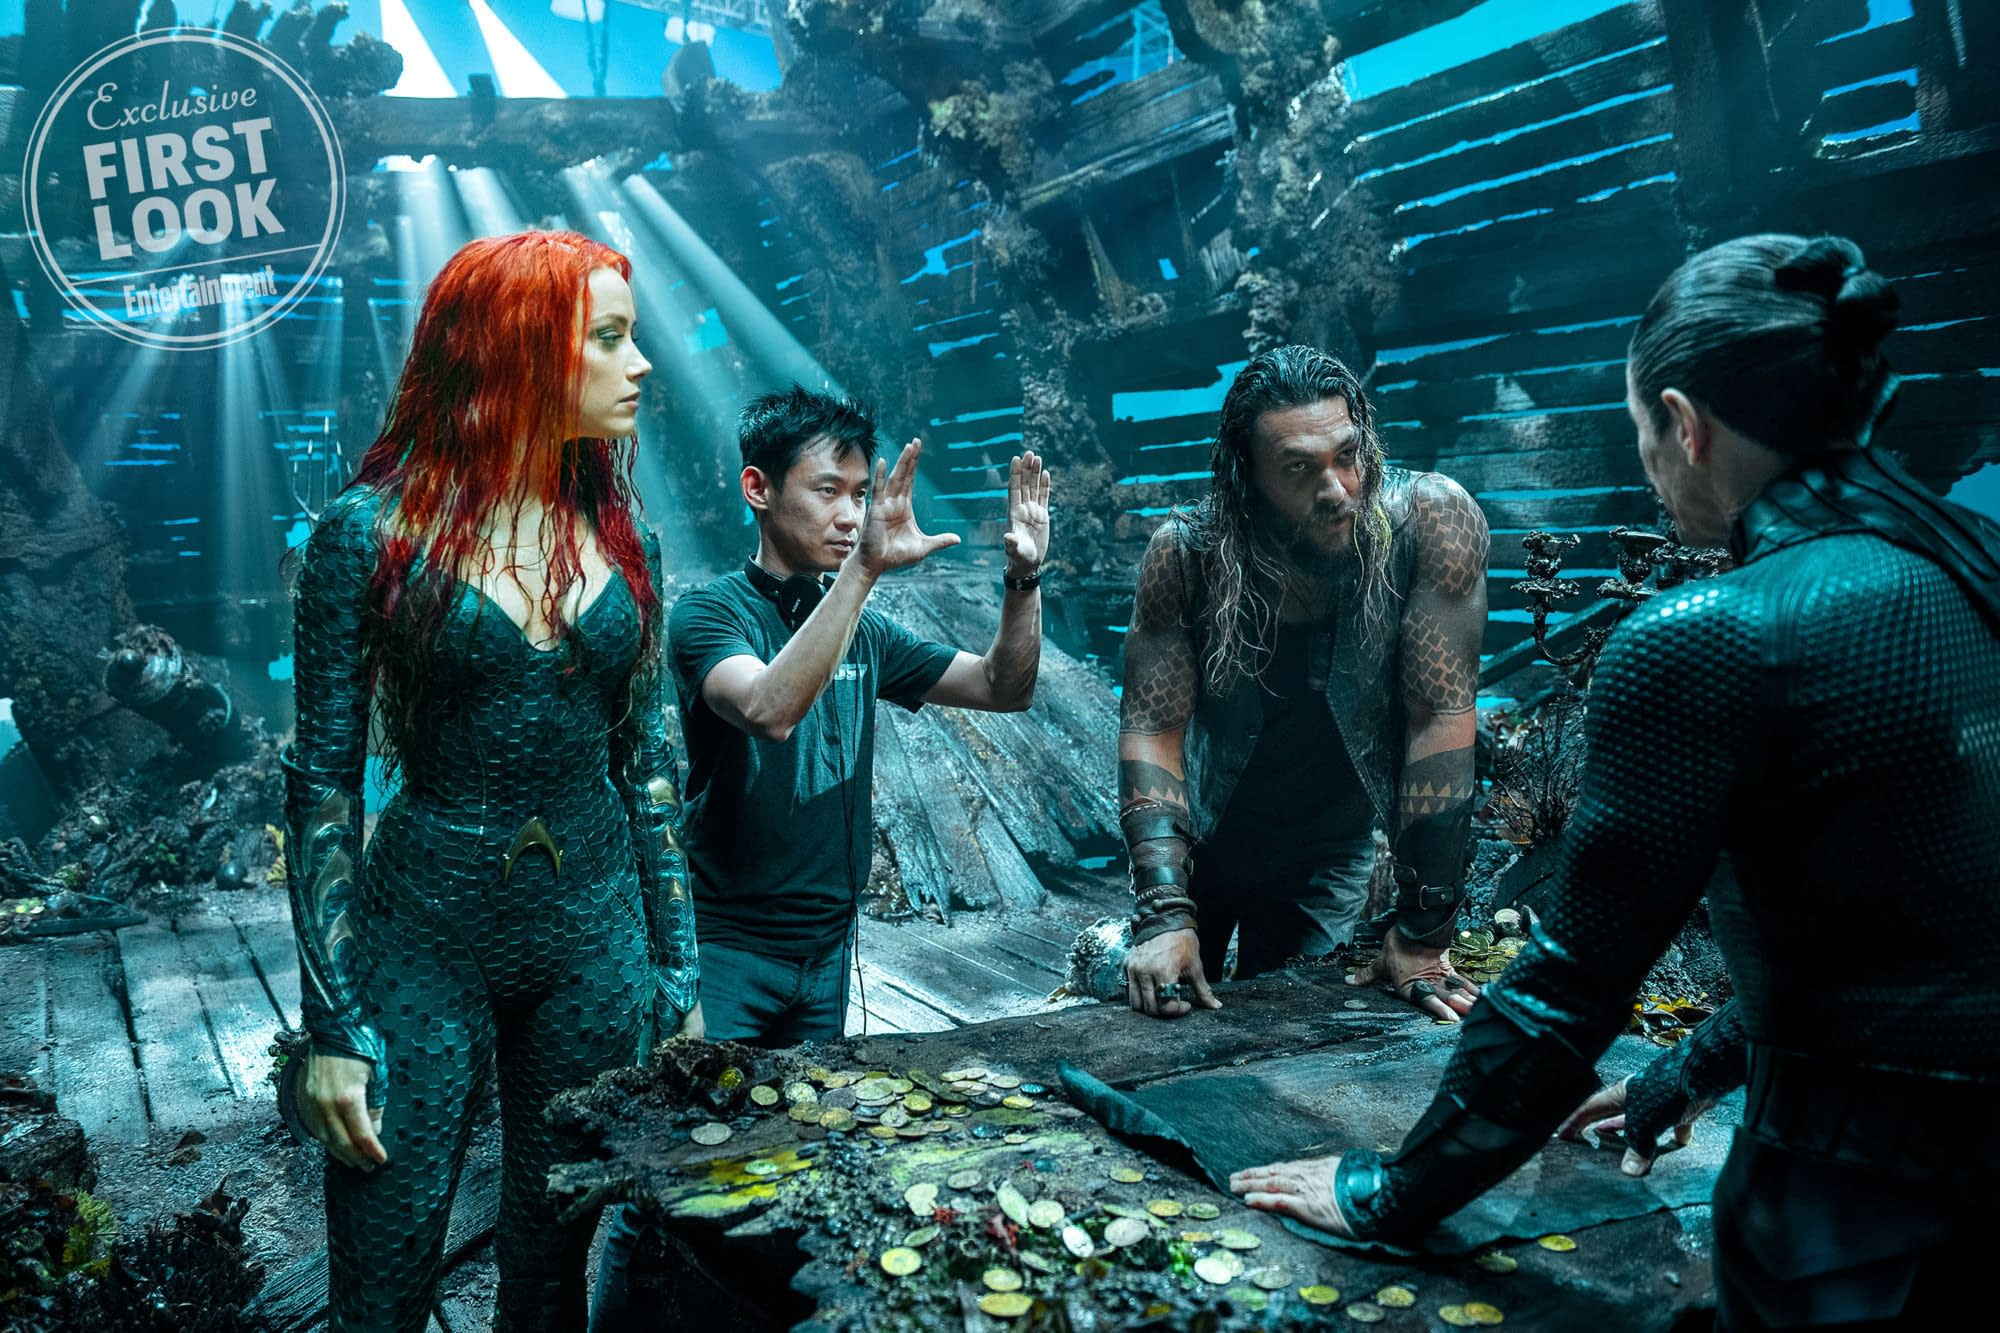 Director James Wan Talks About the Tone of Aquaman